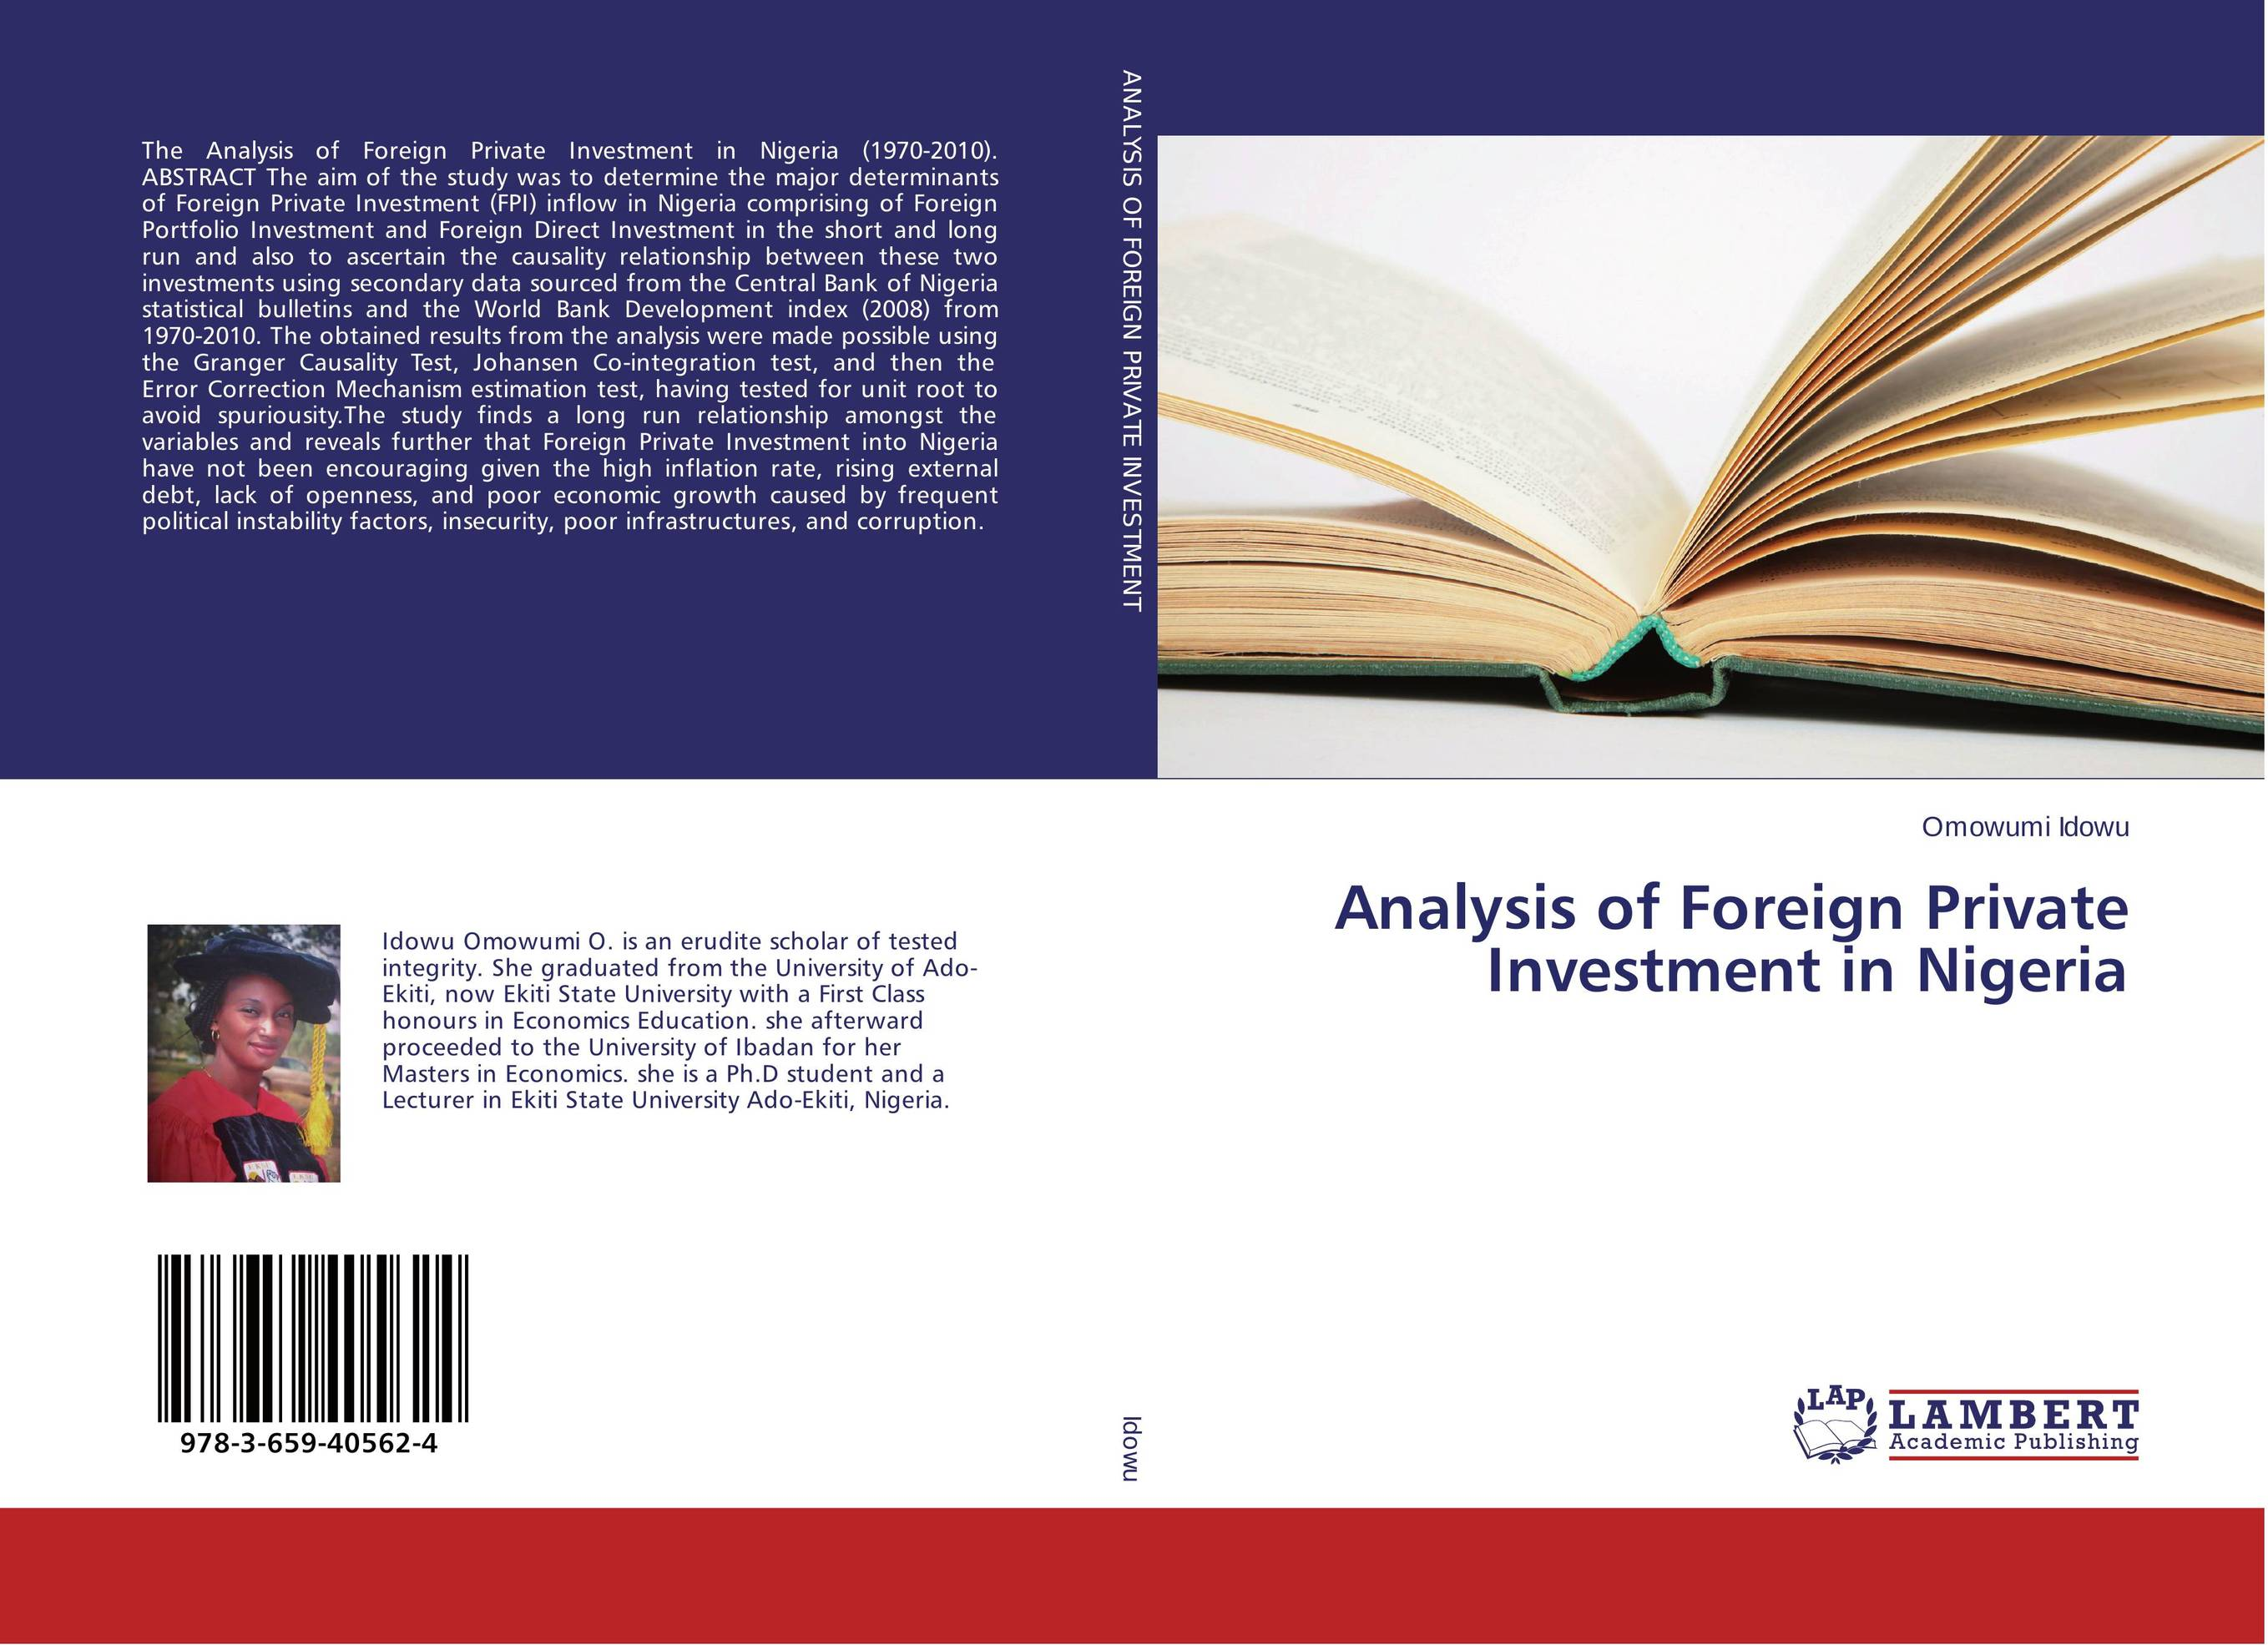 Analysis of Foreign Private Investment in Nigeria relationship of foreign direct investment and stock markets